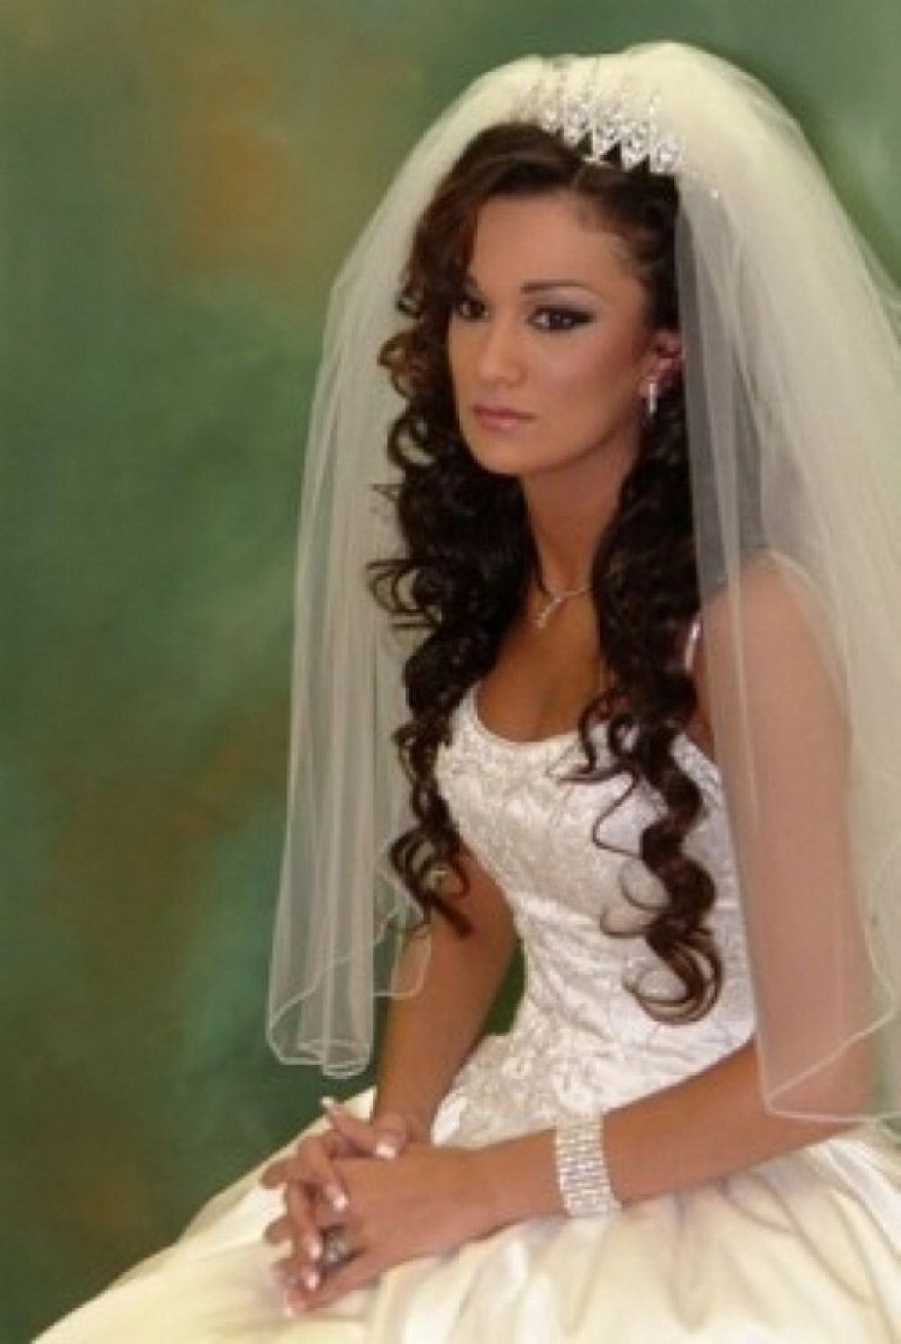 Current Wedding Hairstyles For Long Hair Without Veil Within Wedding Hairstyles Long Hair With Veil (View 6 of 15)